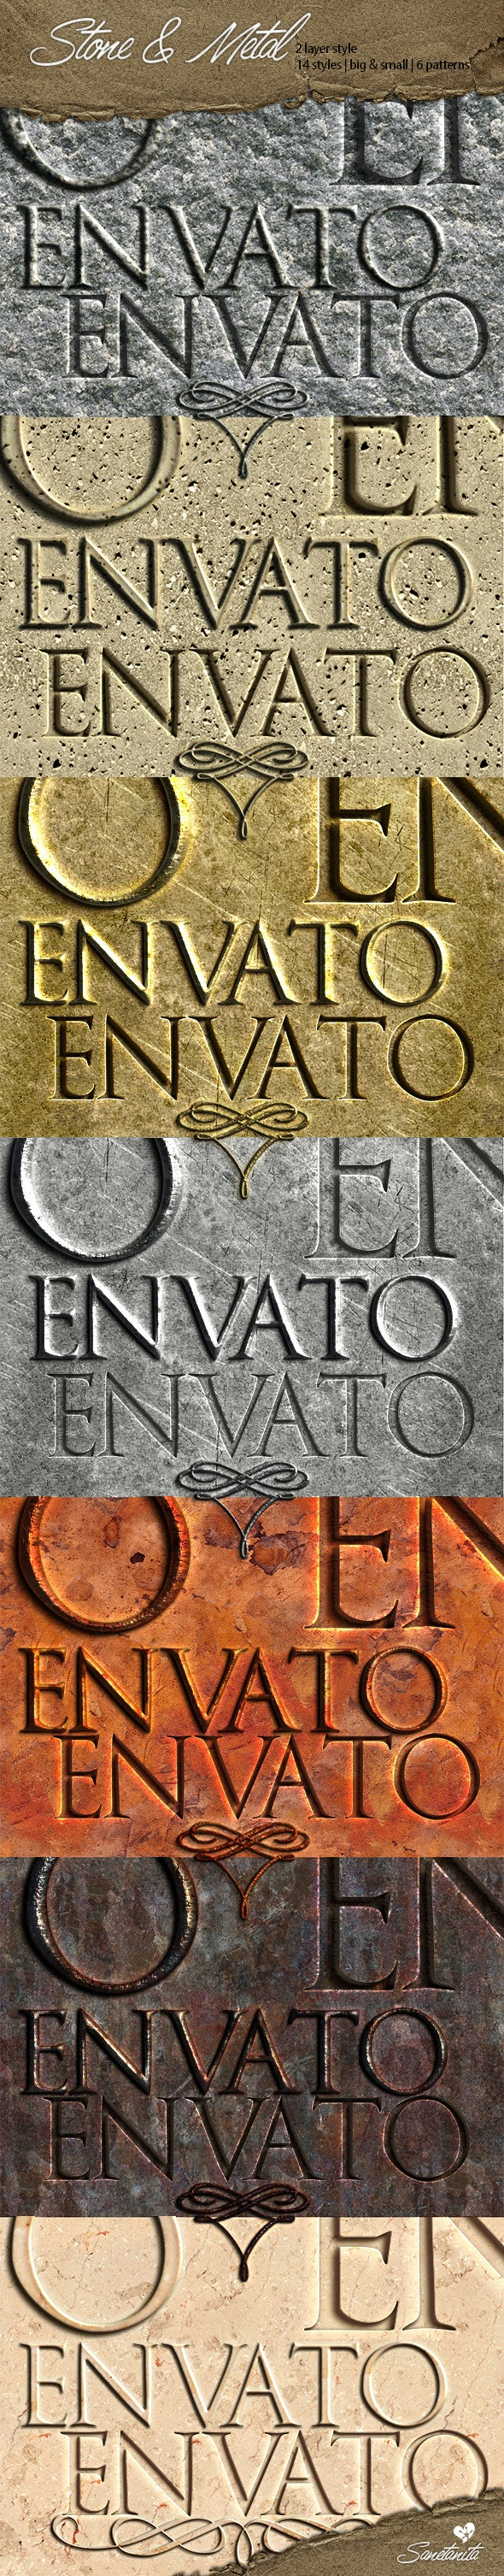 Stone & Metal Styles - Text Effects Styles